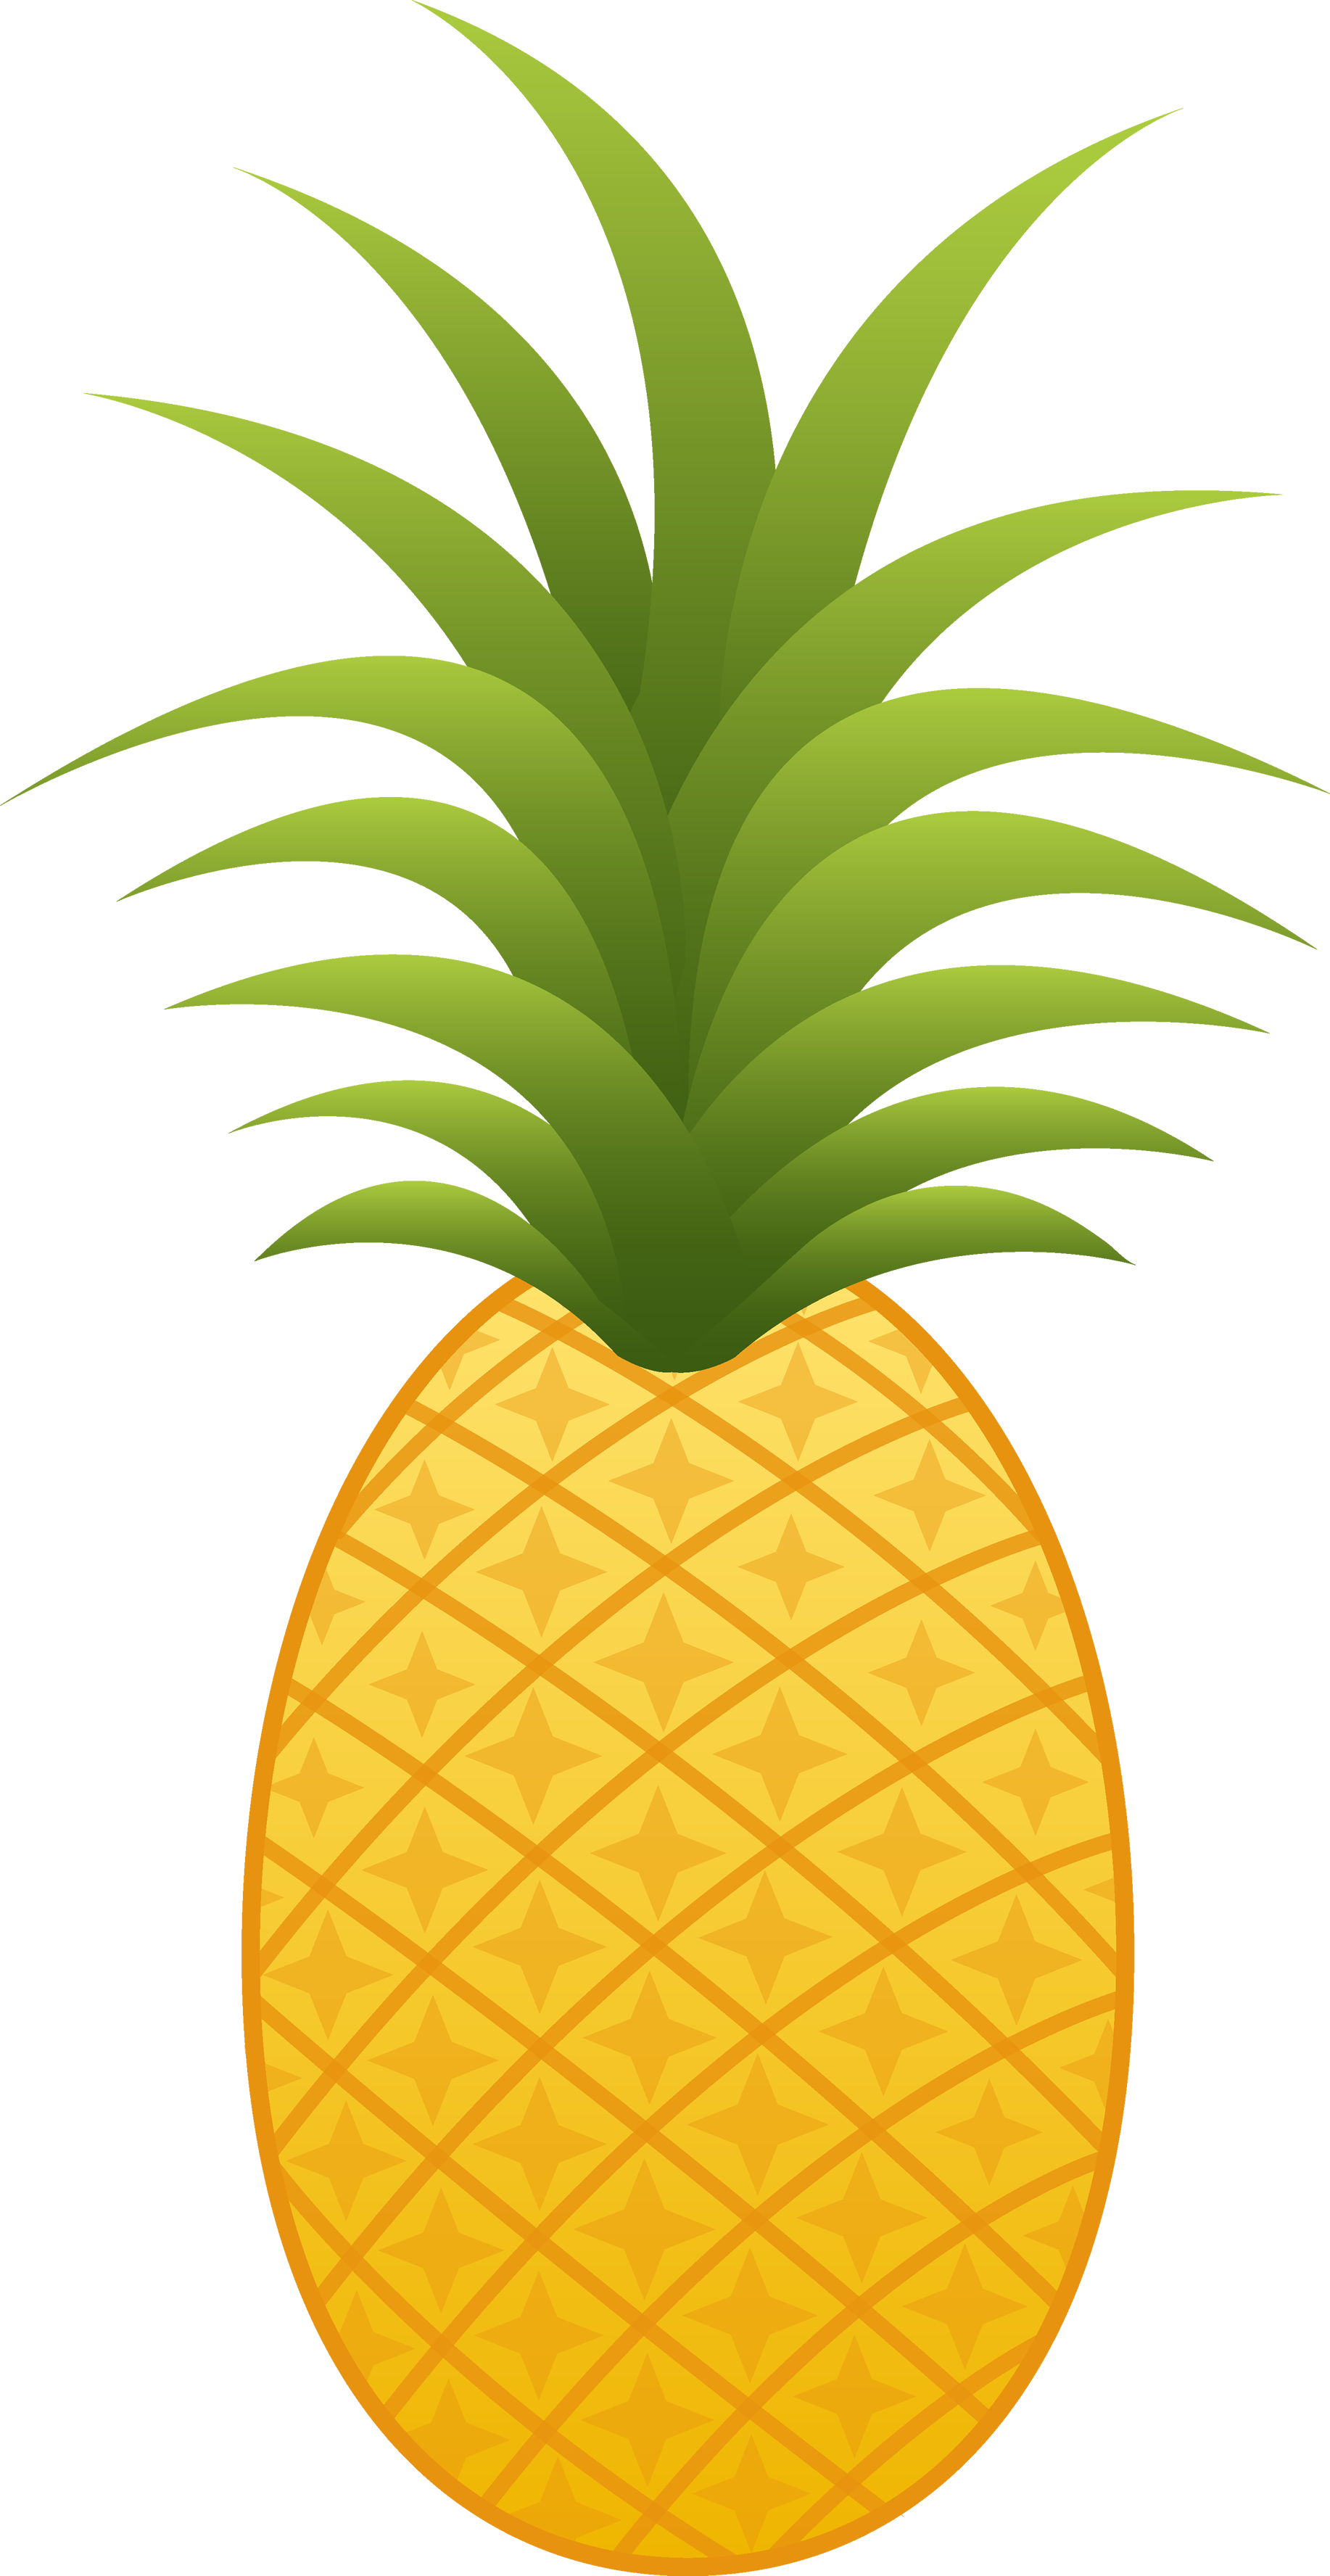 Pineapple images free pictures download 3.